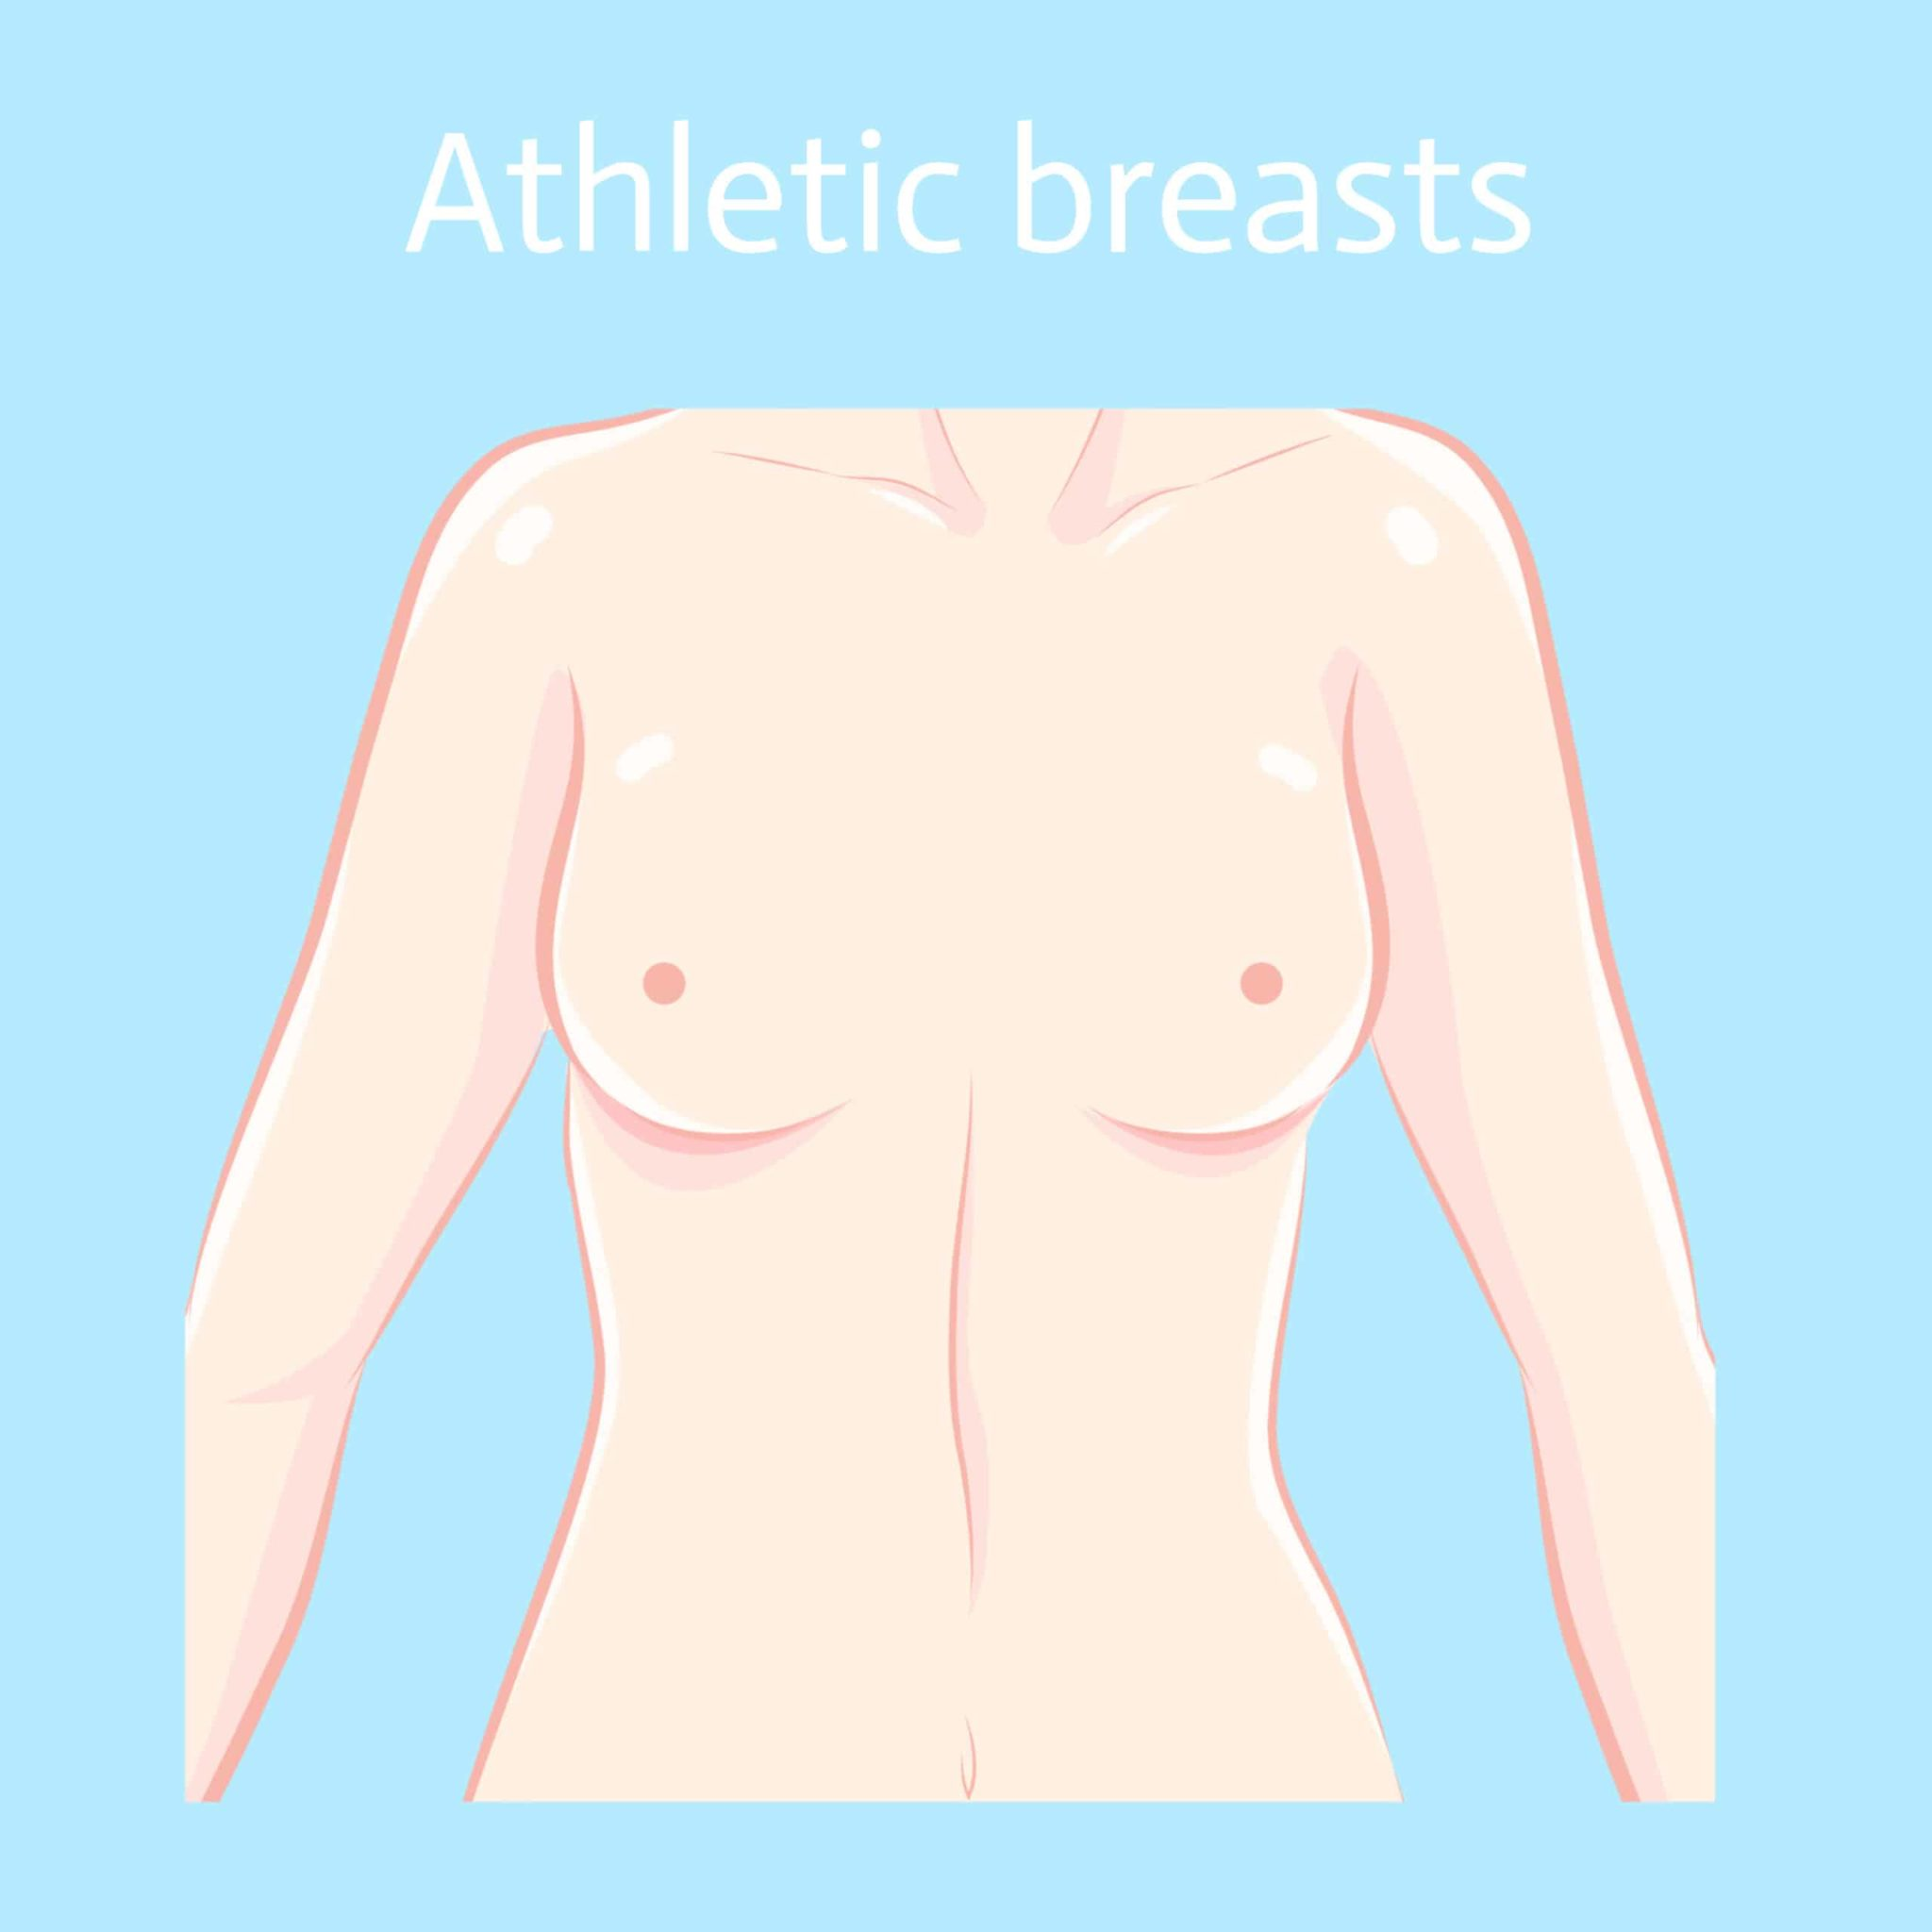 athletic breasts